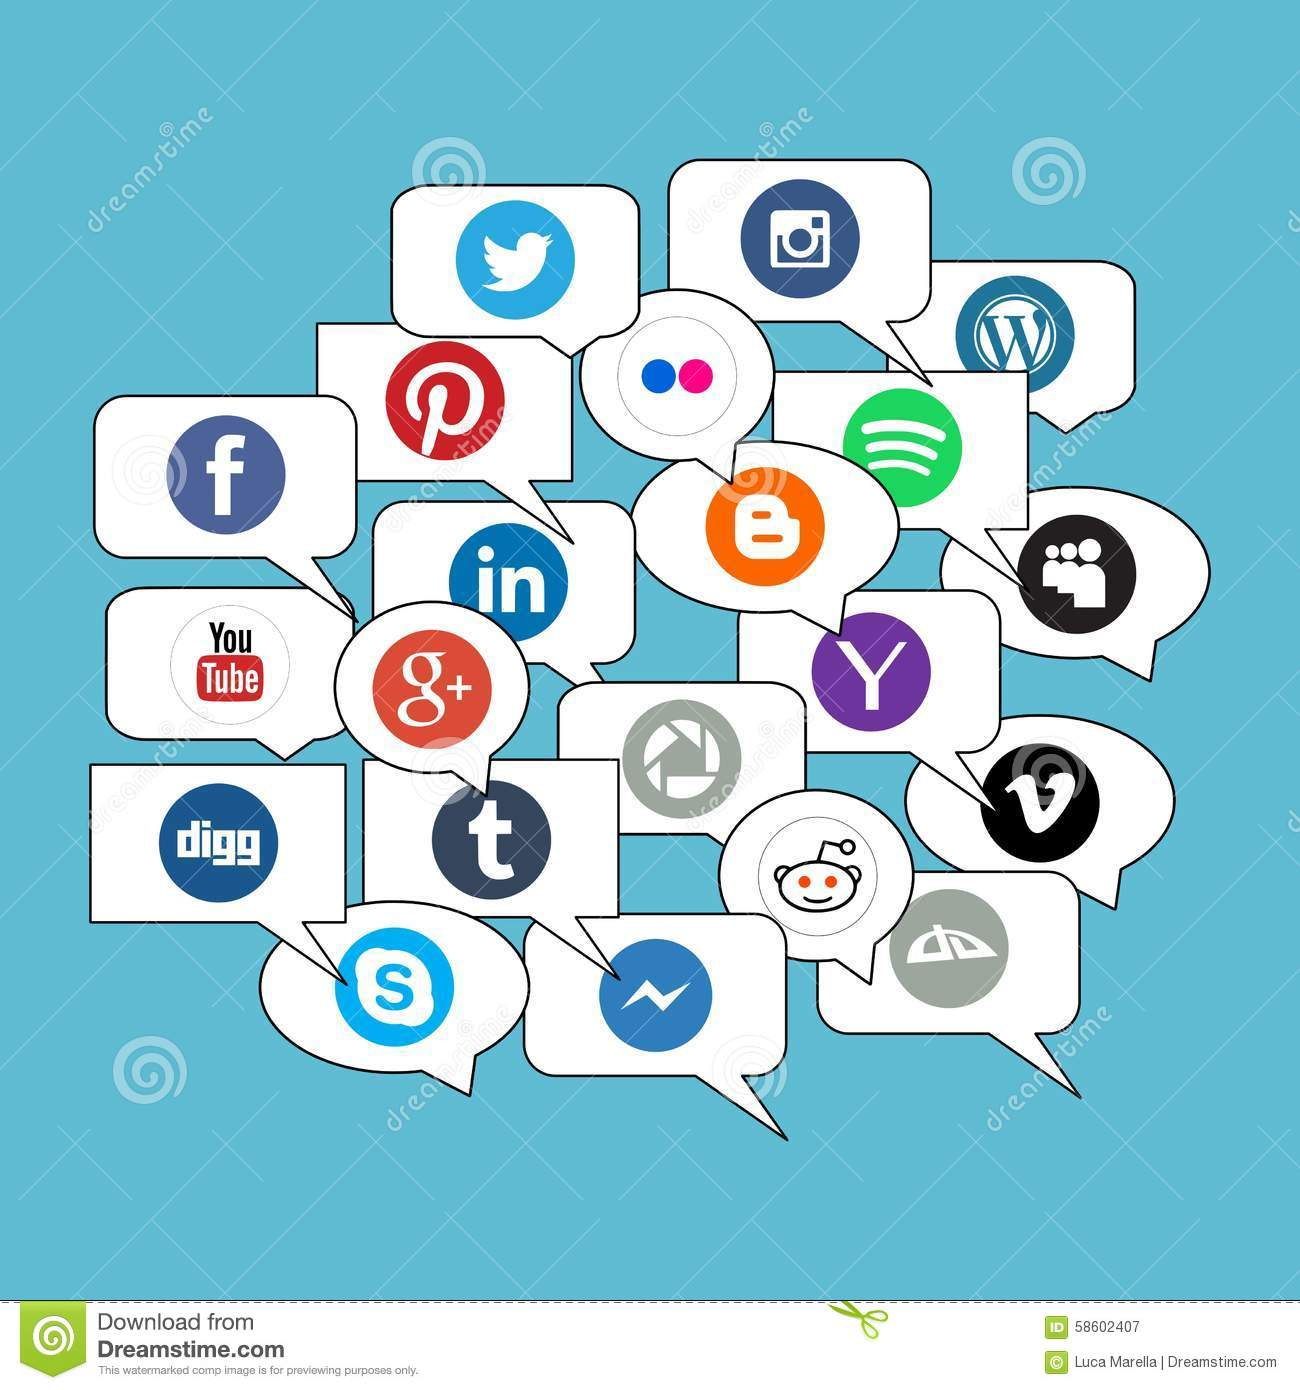 Social networks for communication: a selection of sites